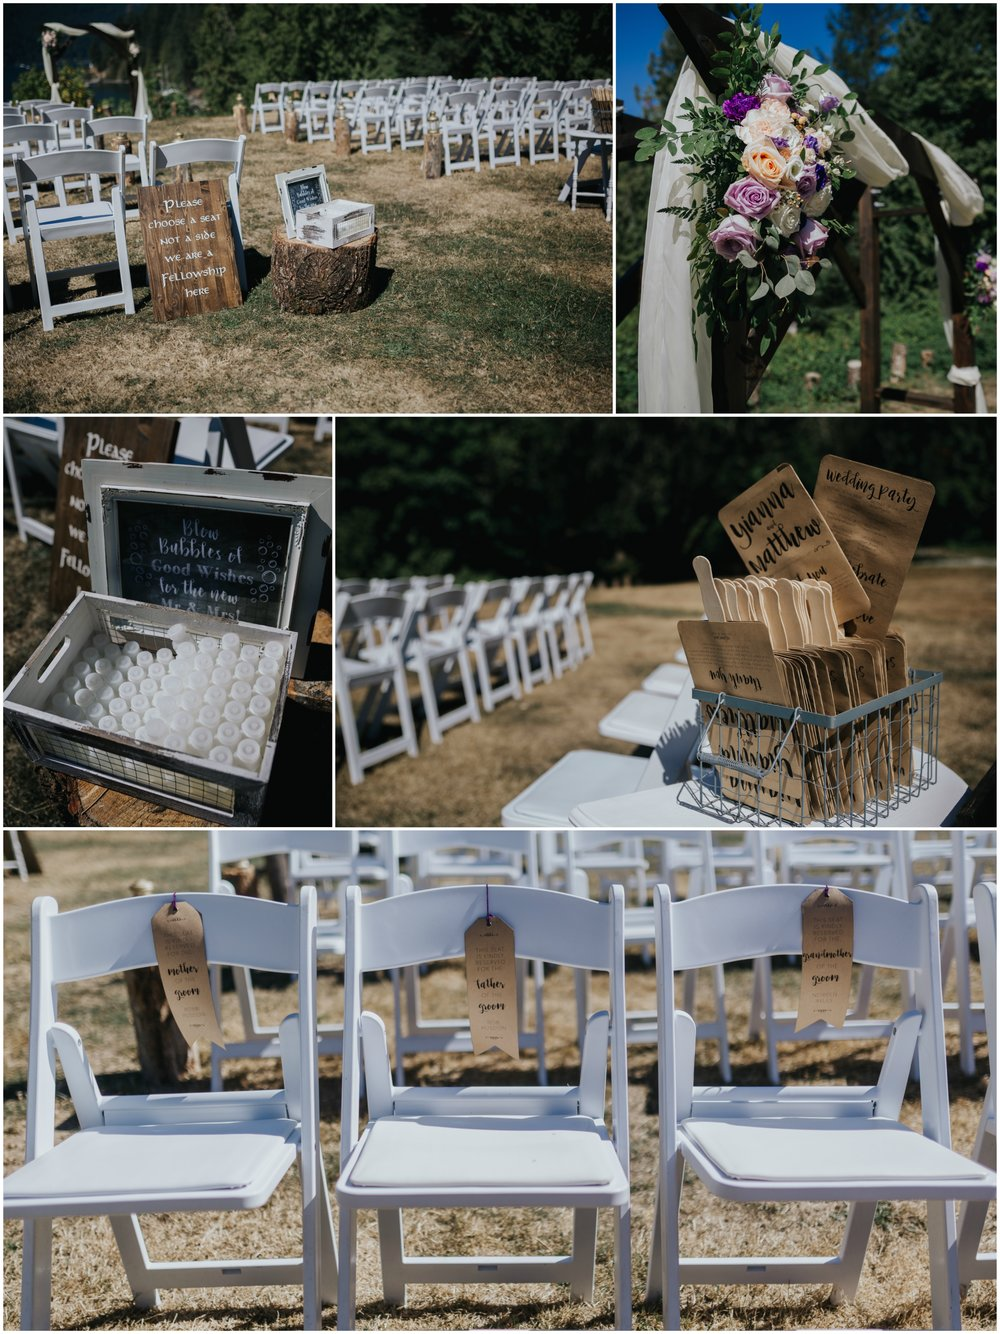 full sun ceremony - lord of the rings ceremony fellowship sign, unplugged ceremony calligraphy sign, fan programs, chair saver ribbons  Mimsical Photography Documentary Wedding Photography, Camp Howdy, Belcarra Provincial Park, North Vancouver. Purple and Grey Wedding Colours, Natural Greenery, Rustic Details, Summer, Lace and chiffon, big wedding, greek, lower mainland, british columbia, real, genuine, candid